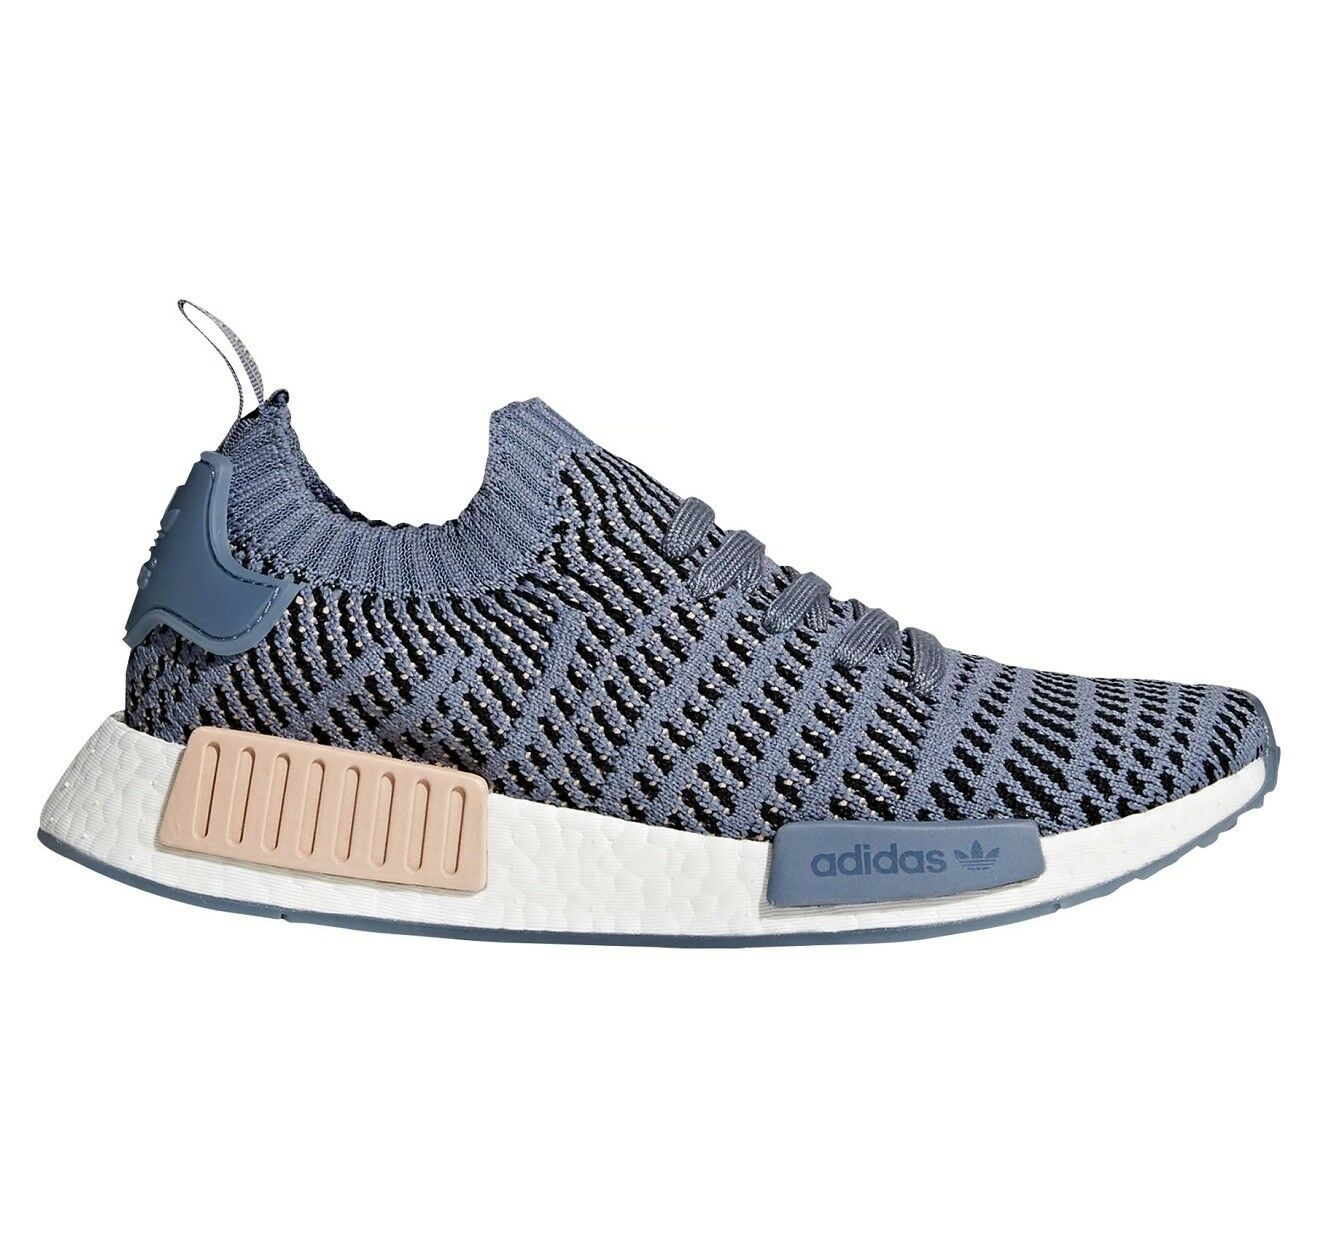 Adidas NMD R1 Stlt Primeknit Womens CQ2029 Steel Pearl Running Shoes Comfortable best-selling model of the brand